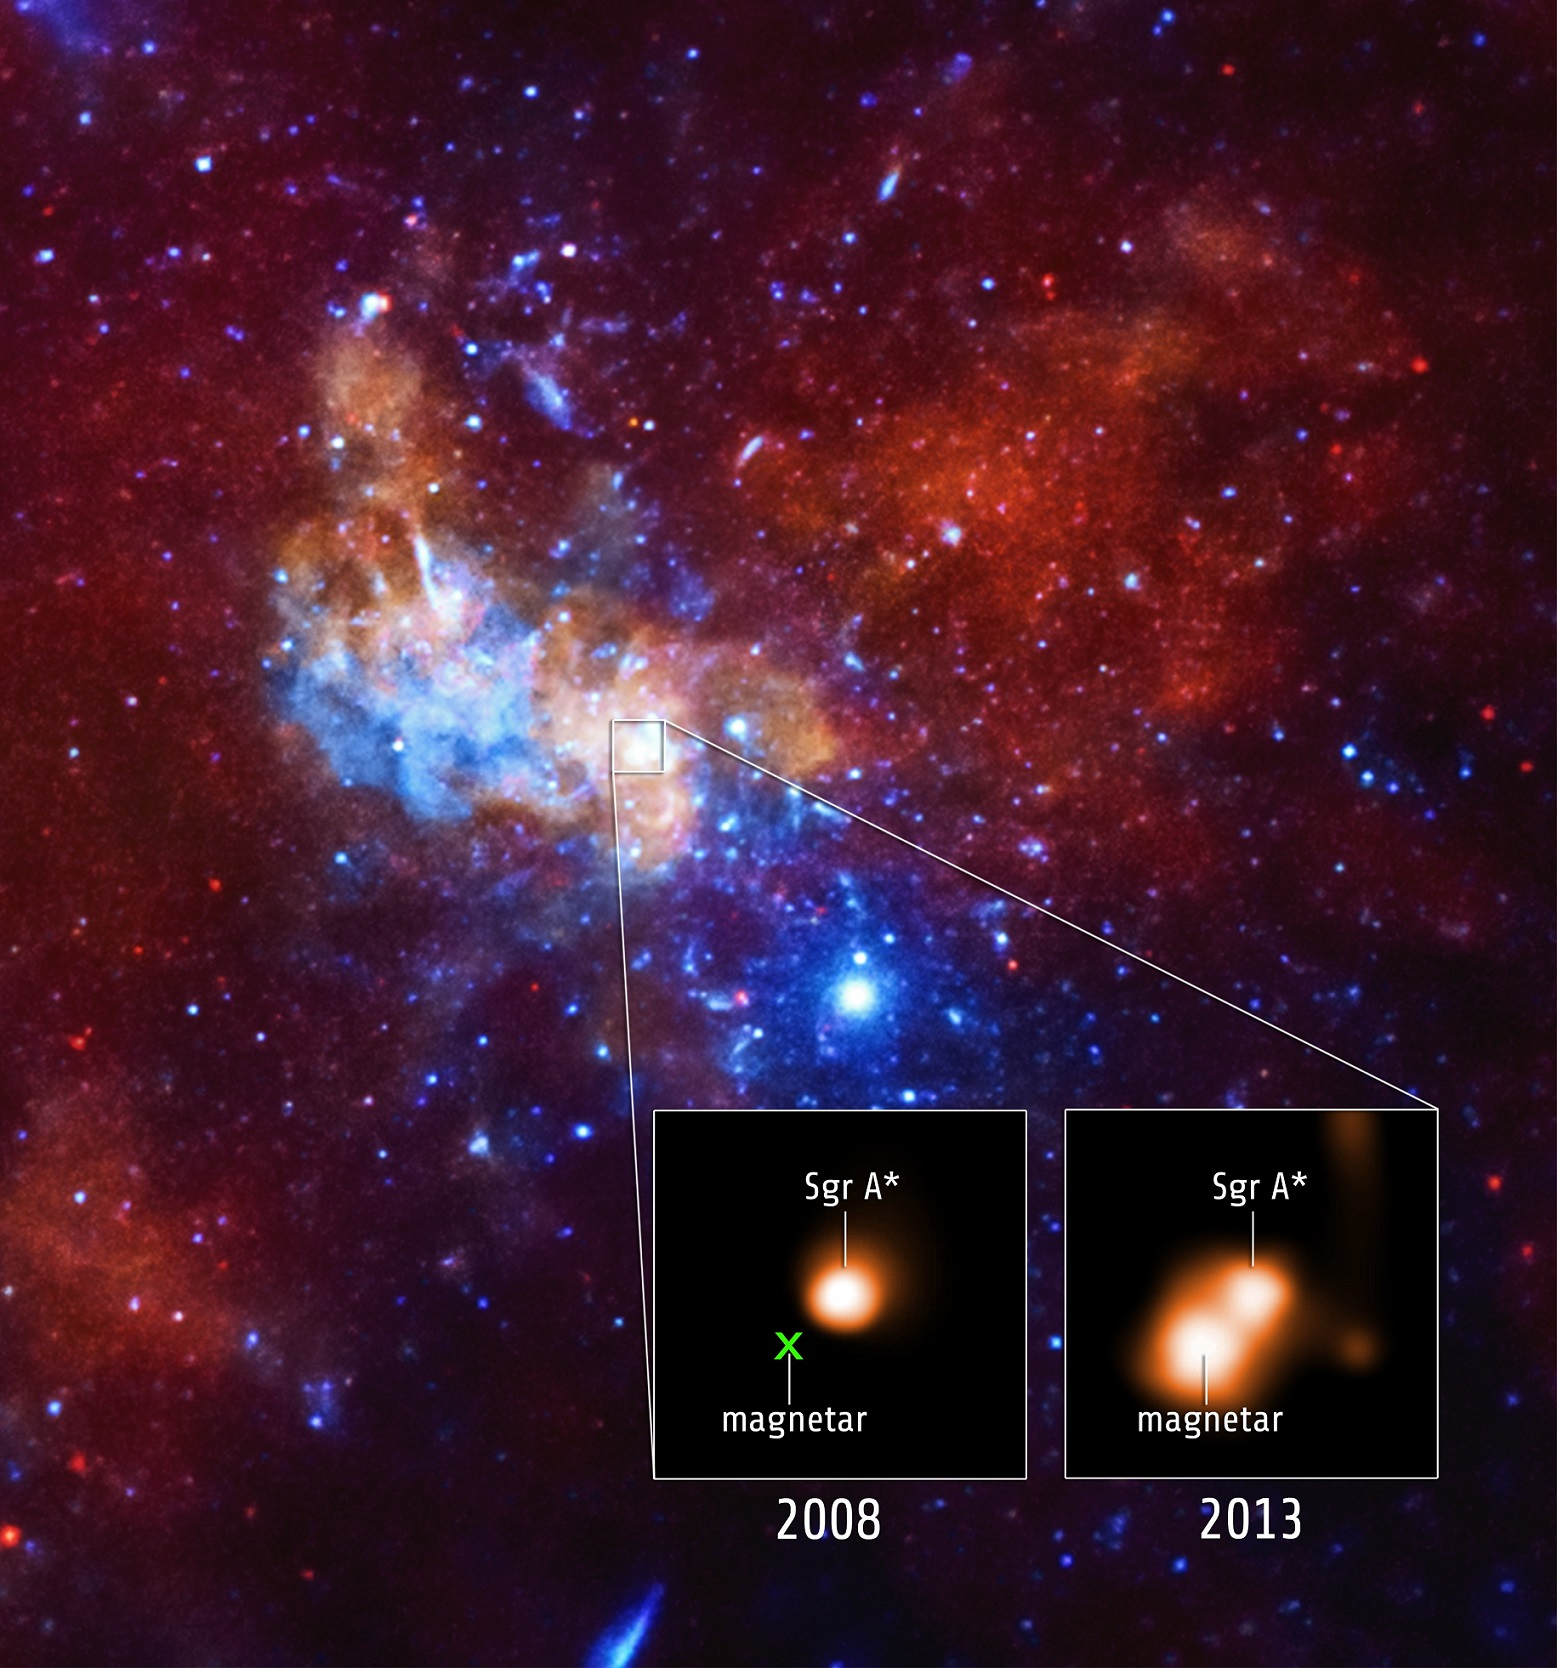 X-ray views of the magnetar near the center of the galaxy